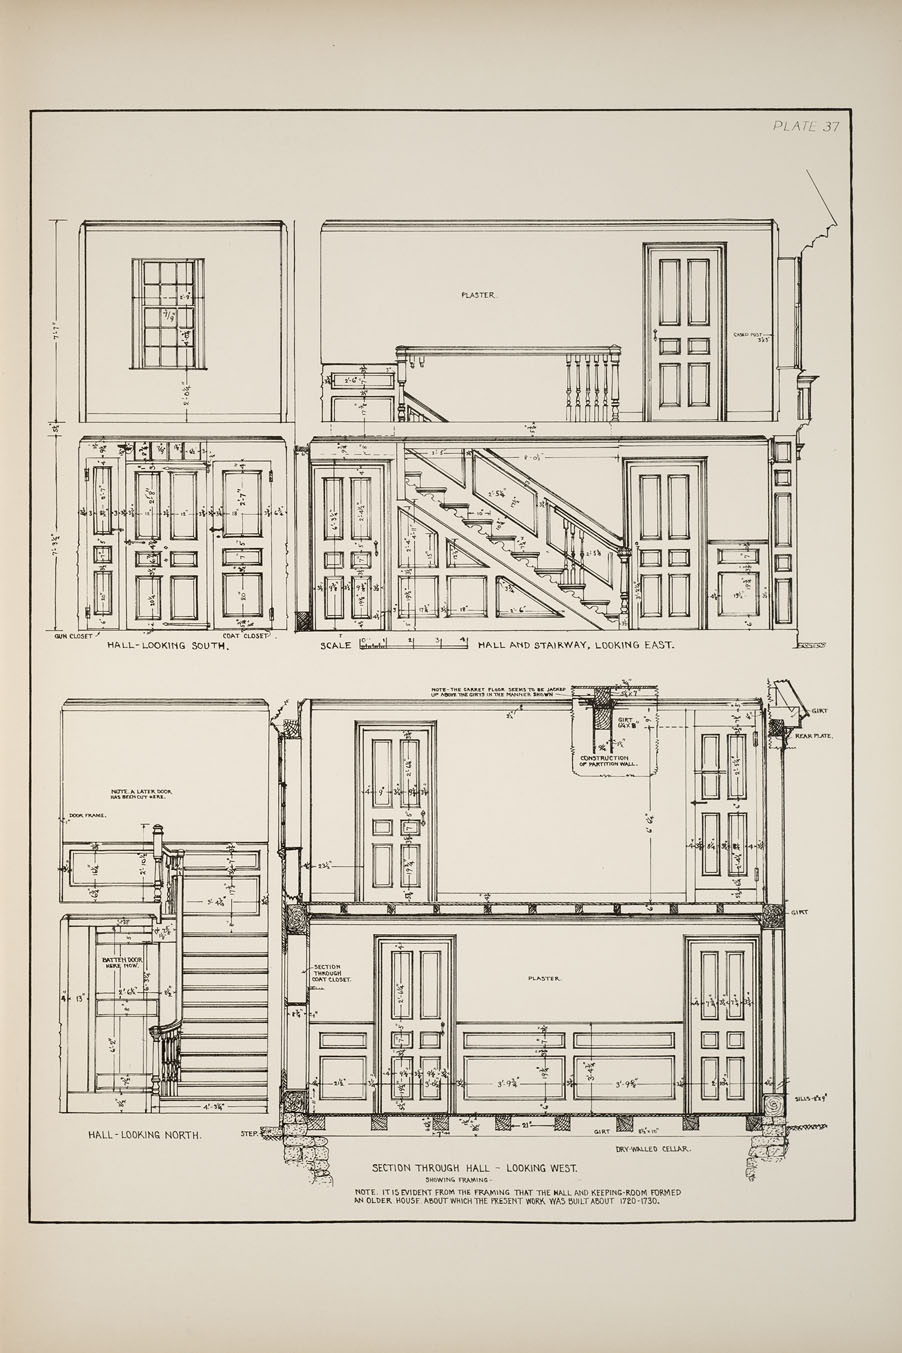 Decorative Arts: Measured drawings of some colonial and Georgian